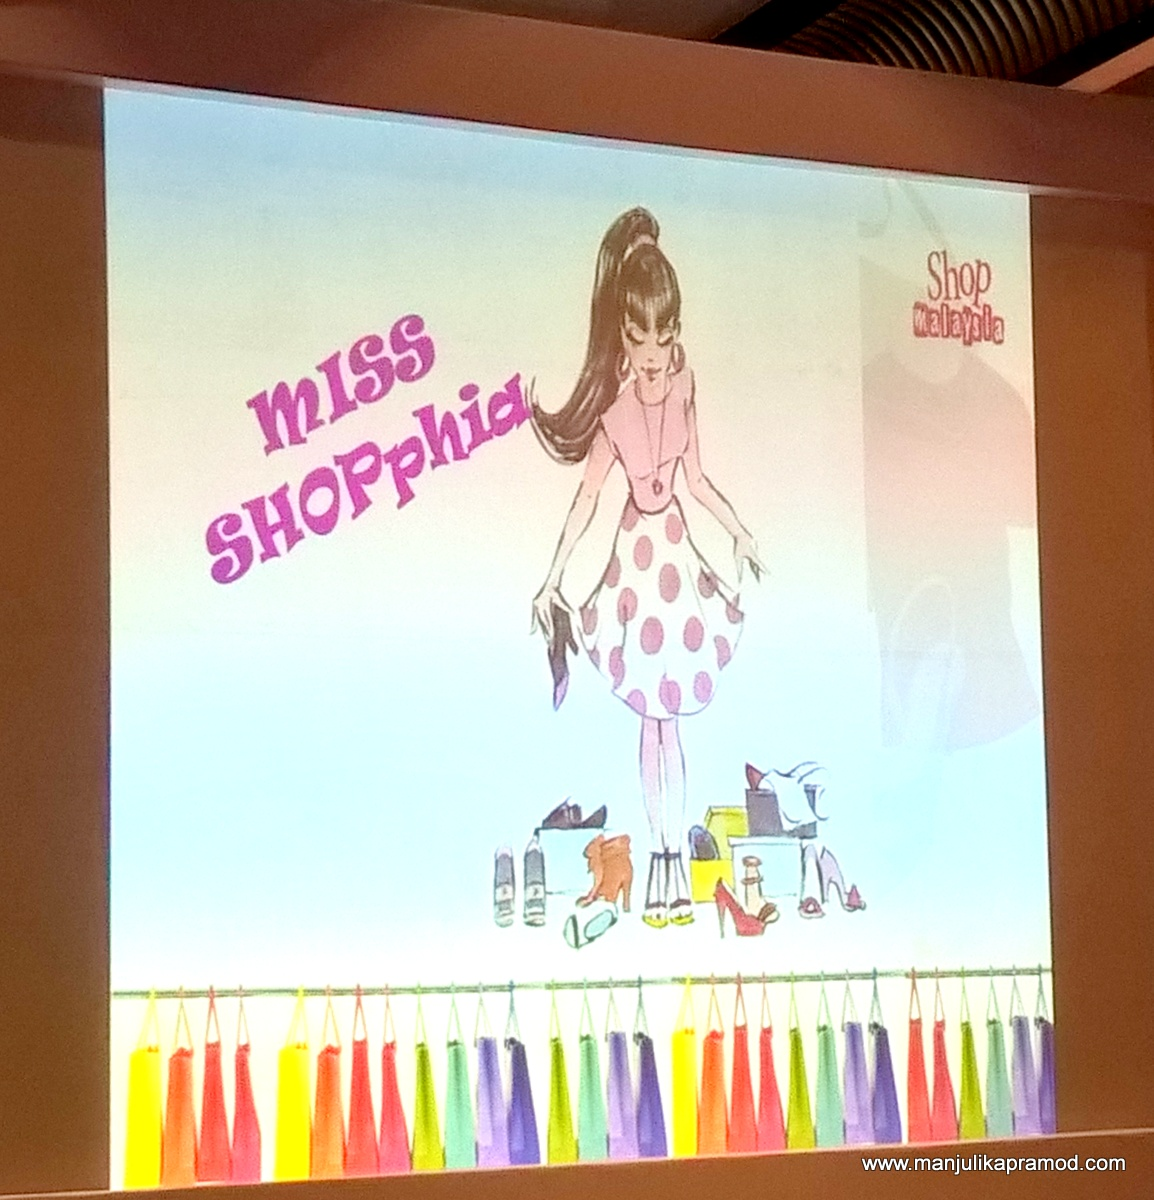 Be a shopaholic like miss shopphia